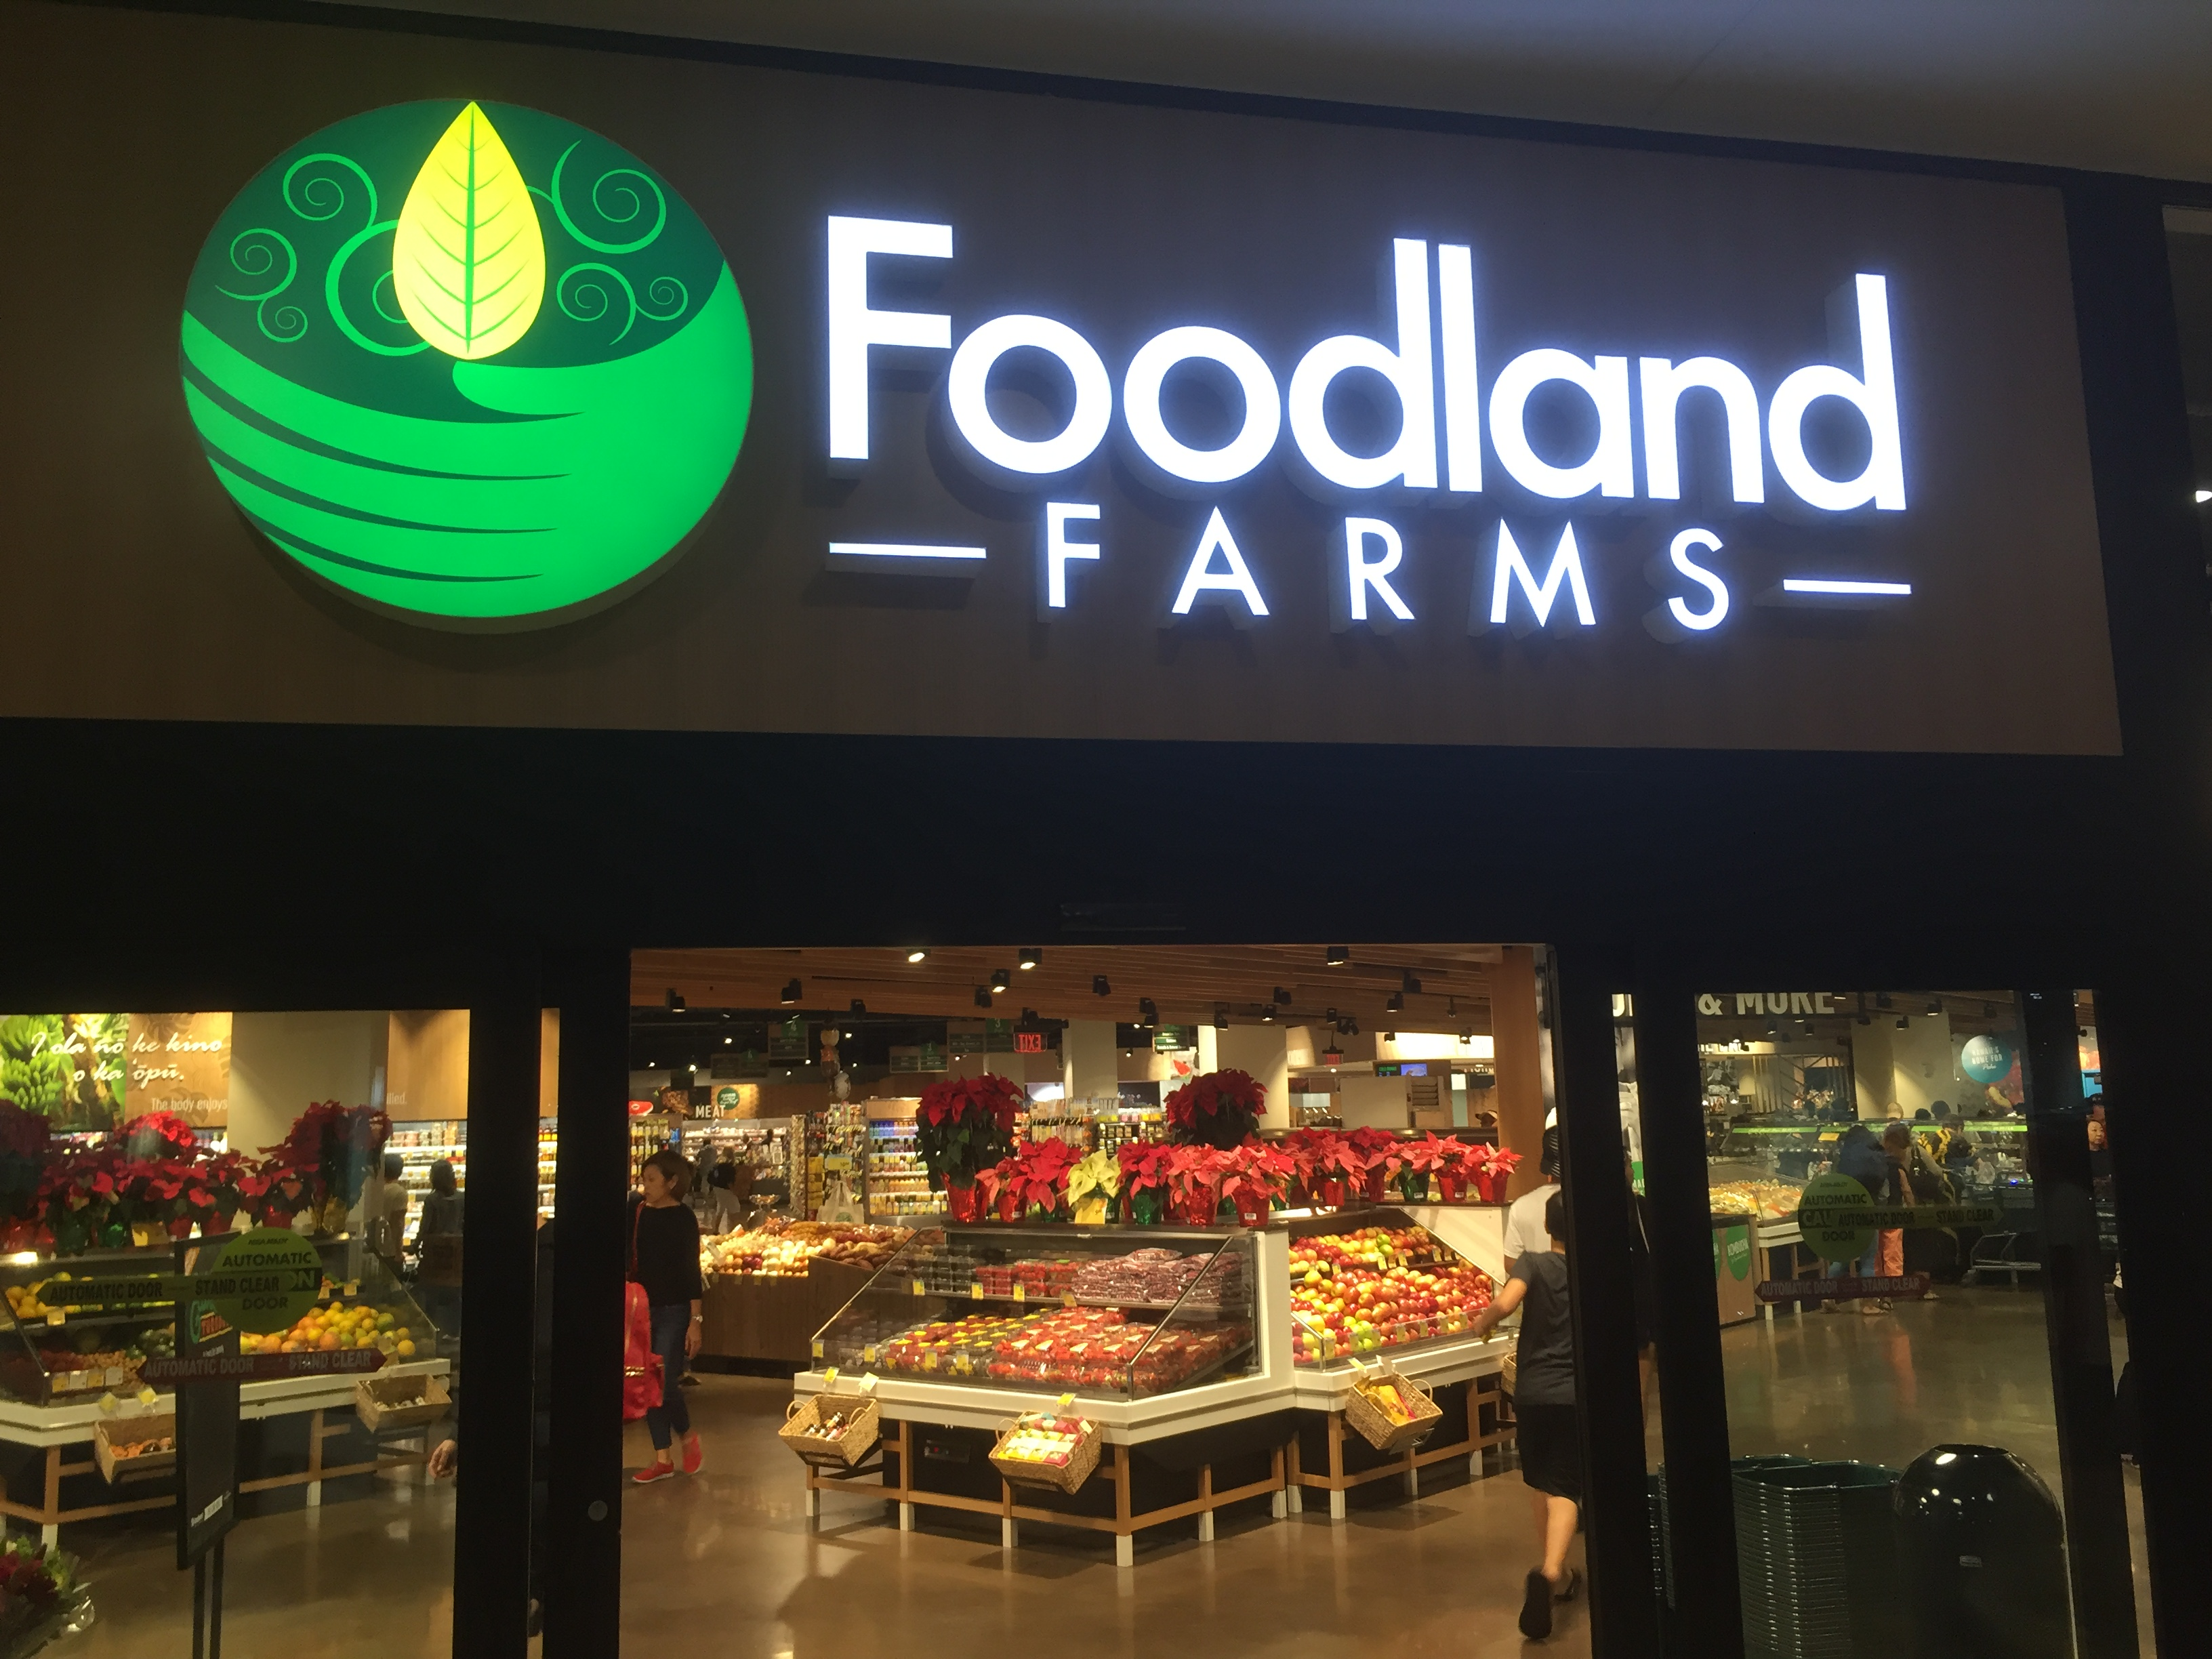 Foodland Farms at Ala Moana